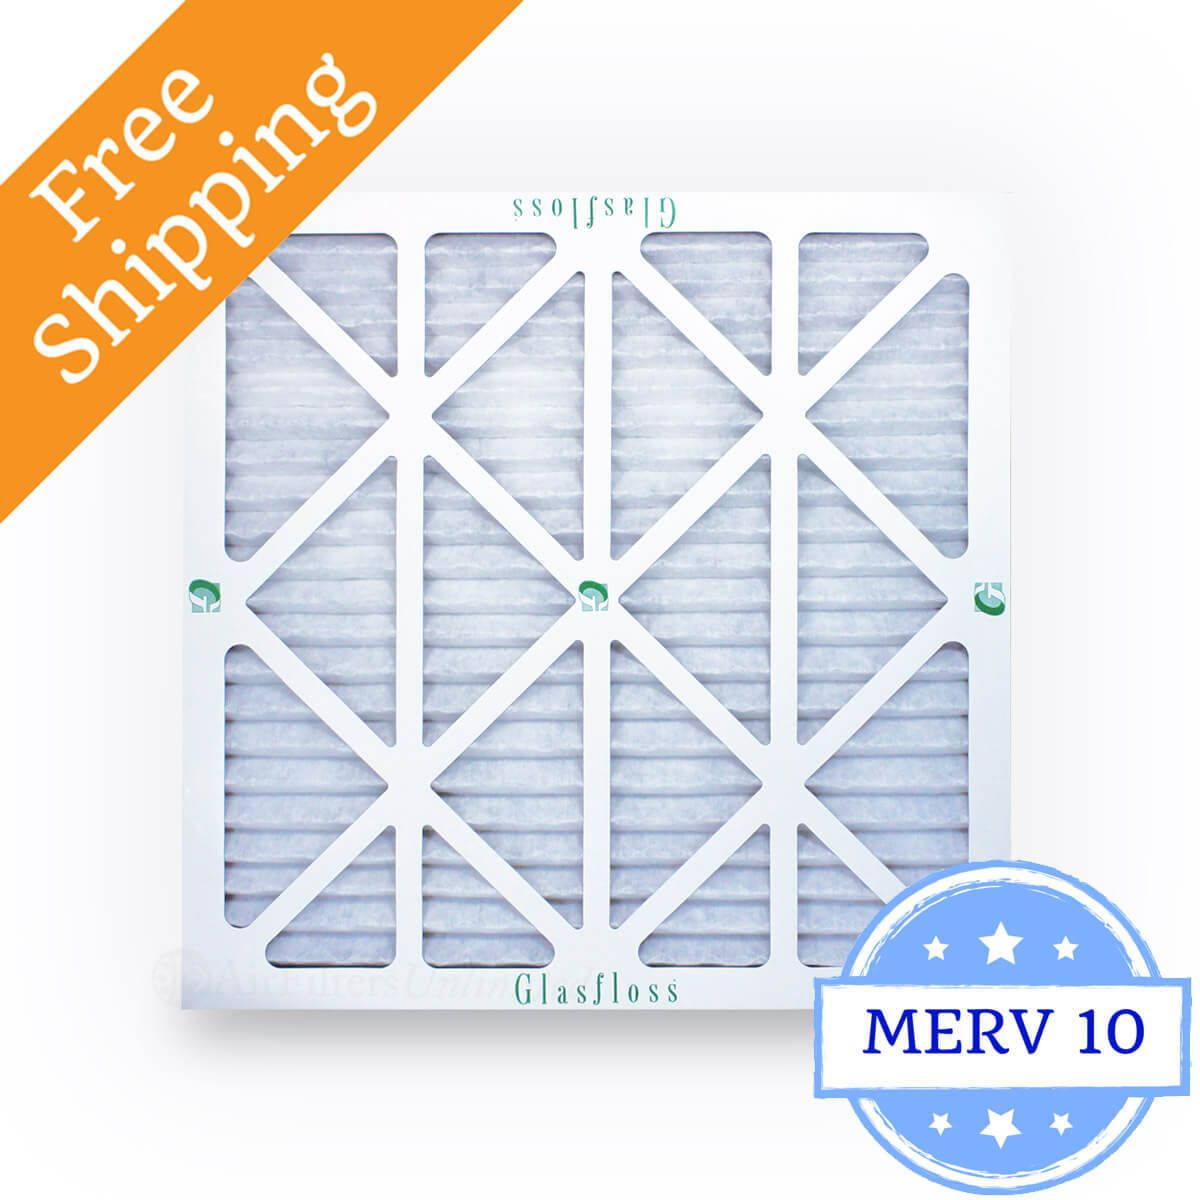 Glasfloss pleated filters 12x12x1 4.98 each 1 Case of